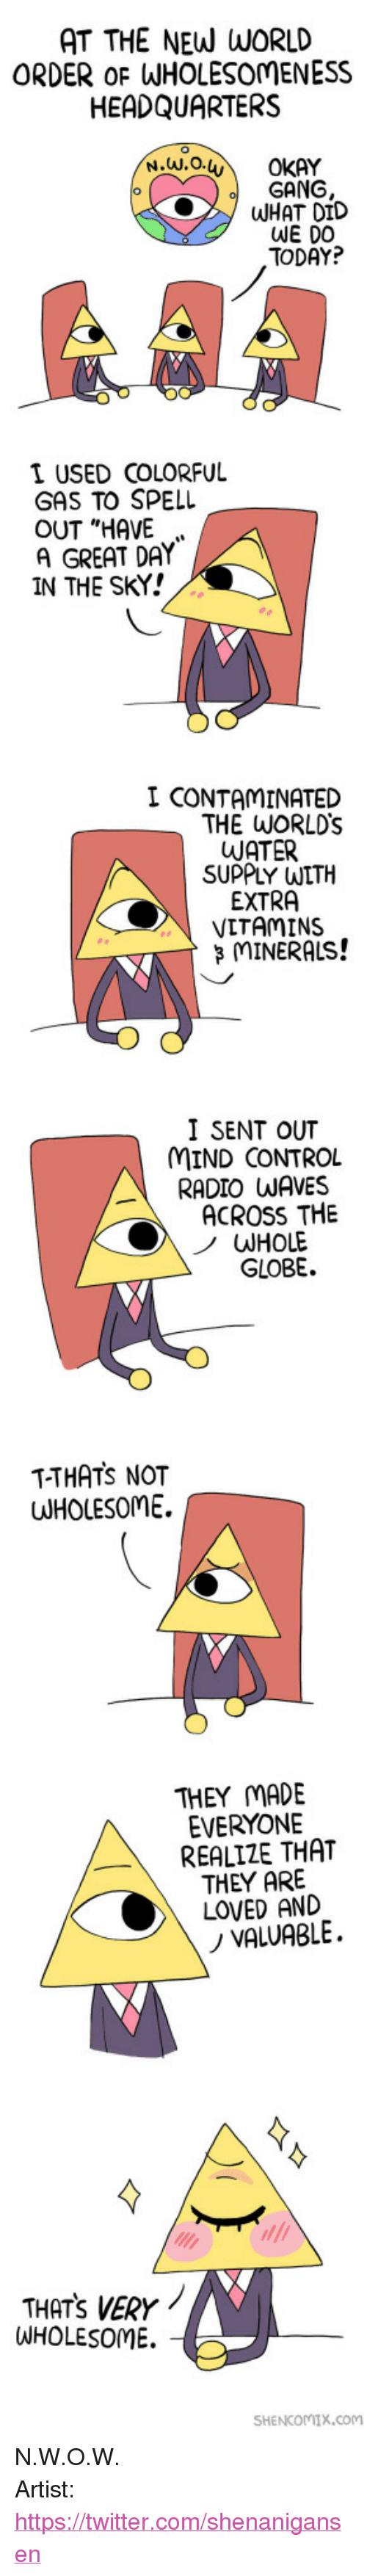 """Shenanigansen: AT THE NEW WORLD  ORDER oF WHOLESOMENESS  HEADQUARTERS  GANG  WHAT DID  WE DO  TODAY?  I USED COLORFUL  GAS TO SPELL  OUT """"HAVE  A GREAT DAY  IN THE SKY!  I CONTAMINATED  THE WORLDs  WATER  SUPPLY WITH  EXTRA  VITAMINS  MINERALS!  I SENT OUT  MIND CONTROL  RADIO WAVES  ACROSS THE  HOLE  GLOBE.  T-THATS NOT  UUHOLESOME.  THEY MADE  EVERYONE  REALIZE THAT  THEY ARE  LOVED AND  ノVALUABLE.  THATS VERY  WHOLESOME.  SHENCOMIX.com <p>N.W.O.W.</p>  Artist: <a href=""""https://twitter.com/shenanigansen"""">https://twitter.com/shenanigansen</a>"""